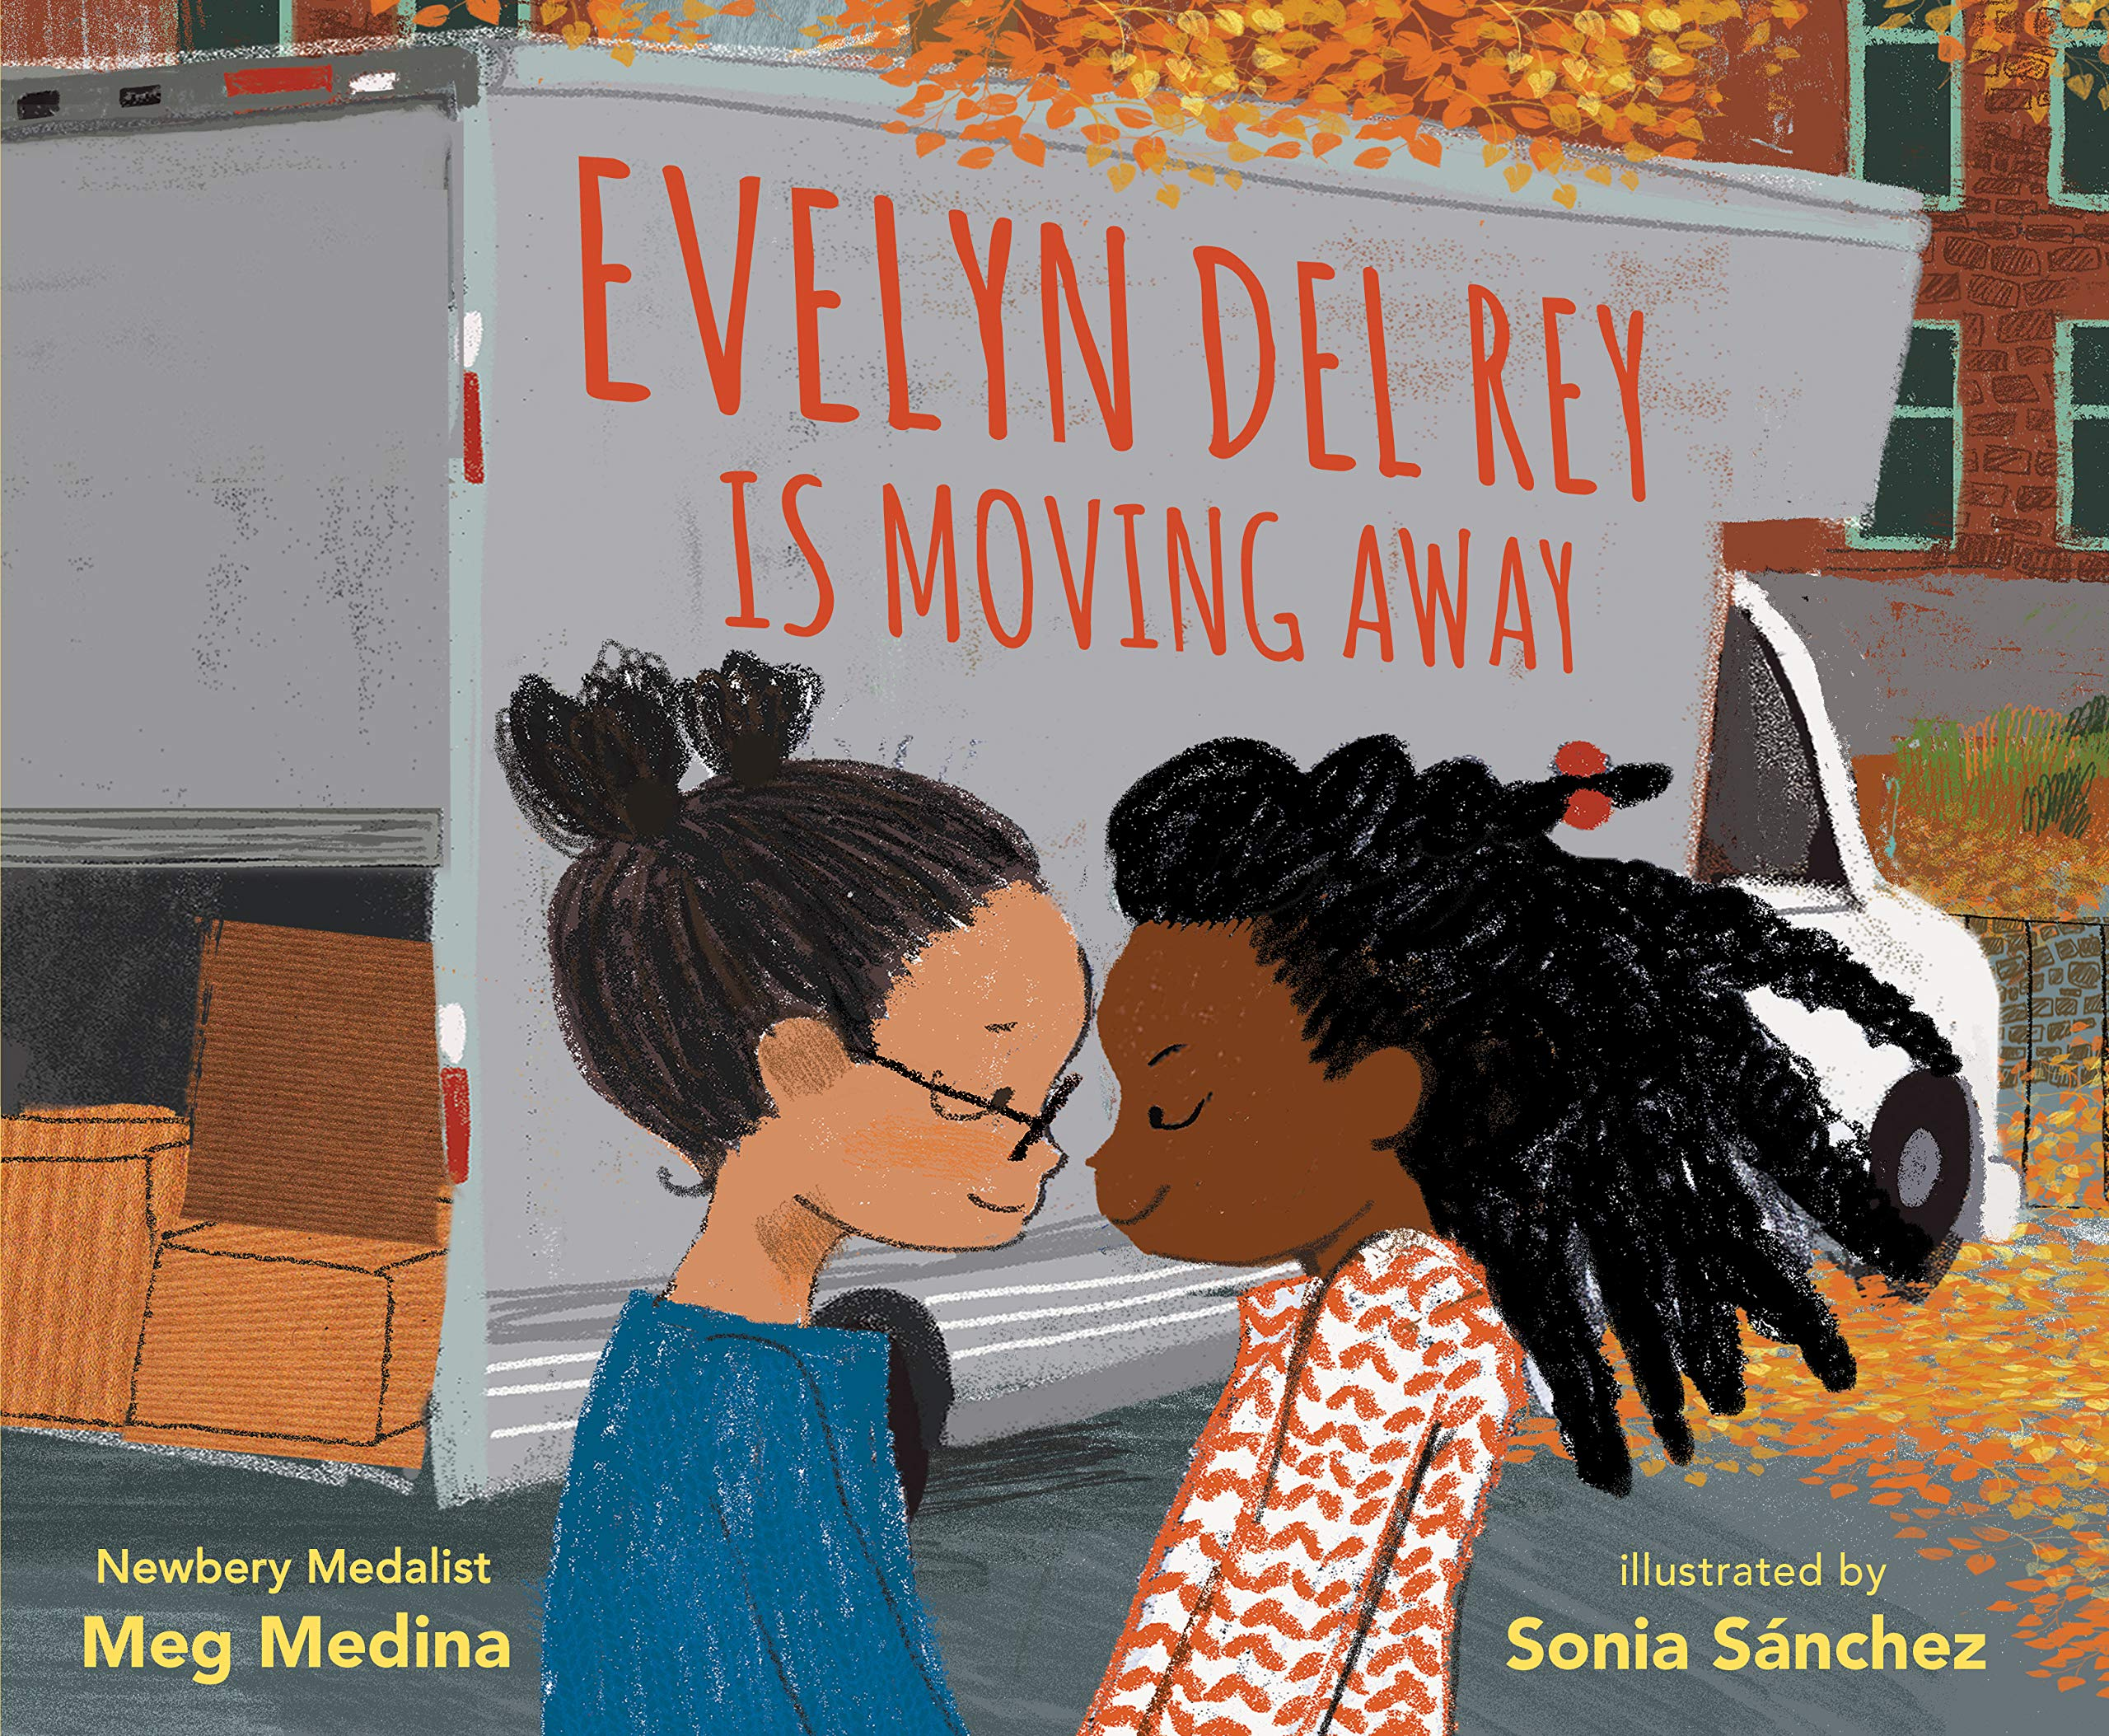 Evelyn Del Rey Is Moving Away by Meg Medina.